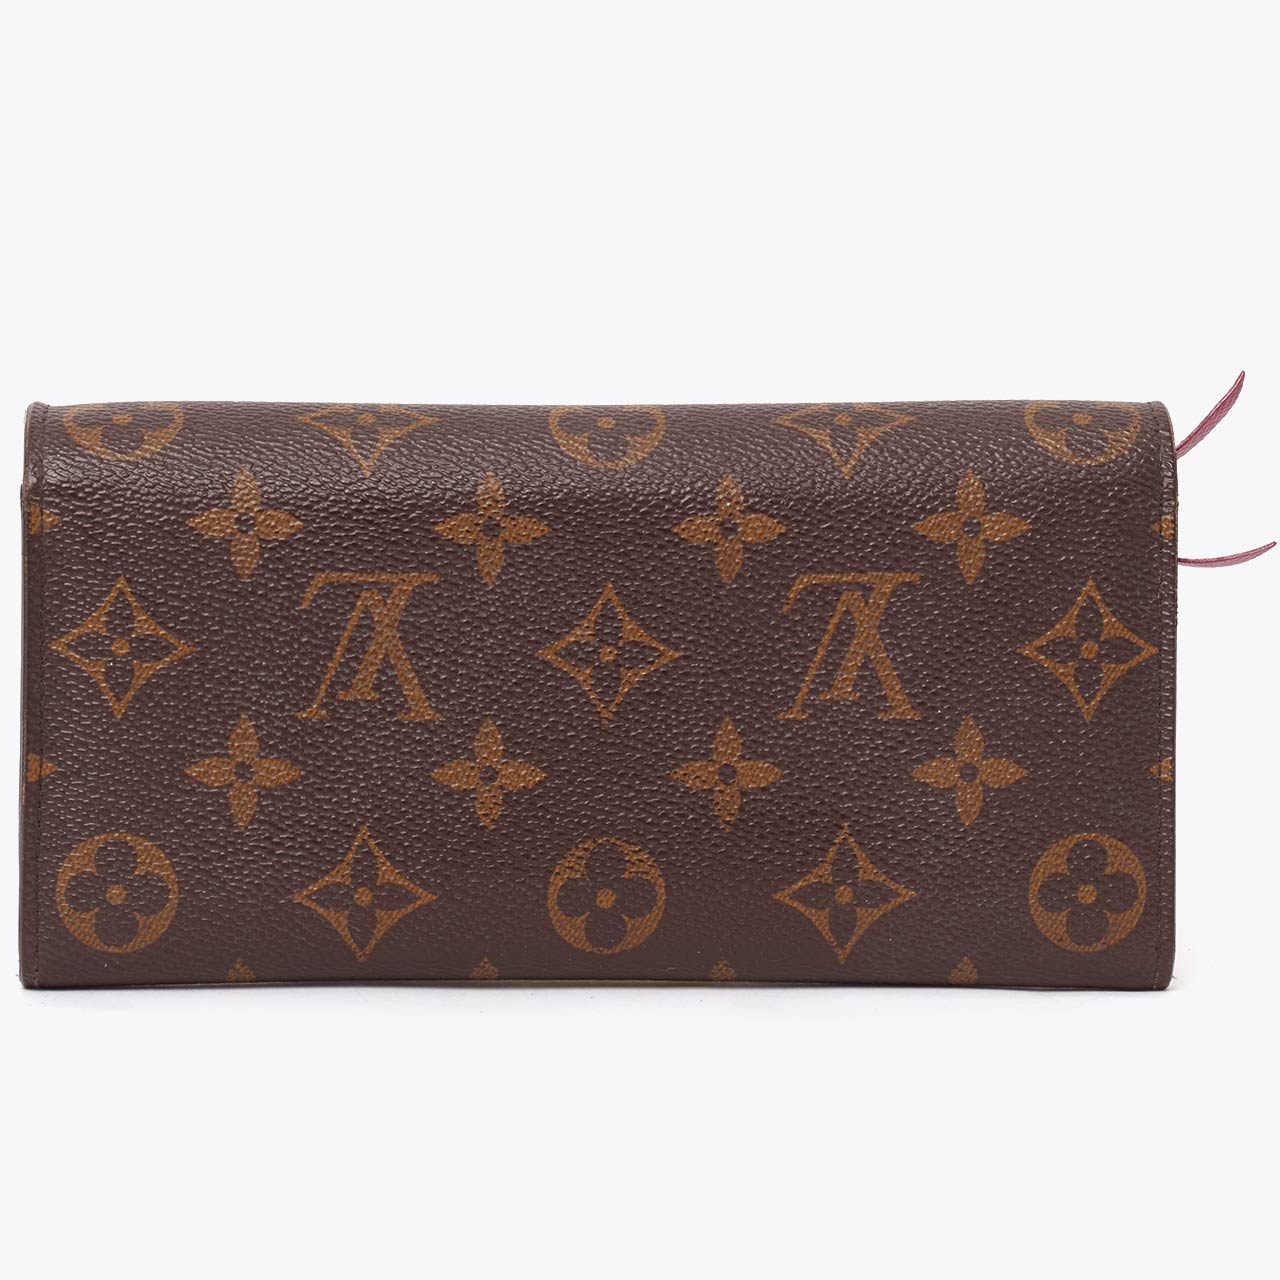 Vintage Louis Vuitton Emillie wallet